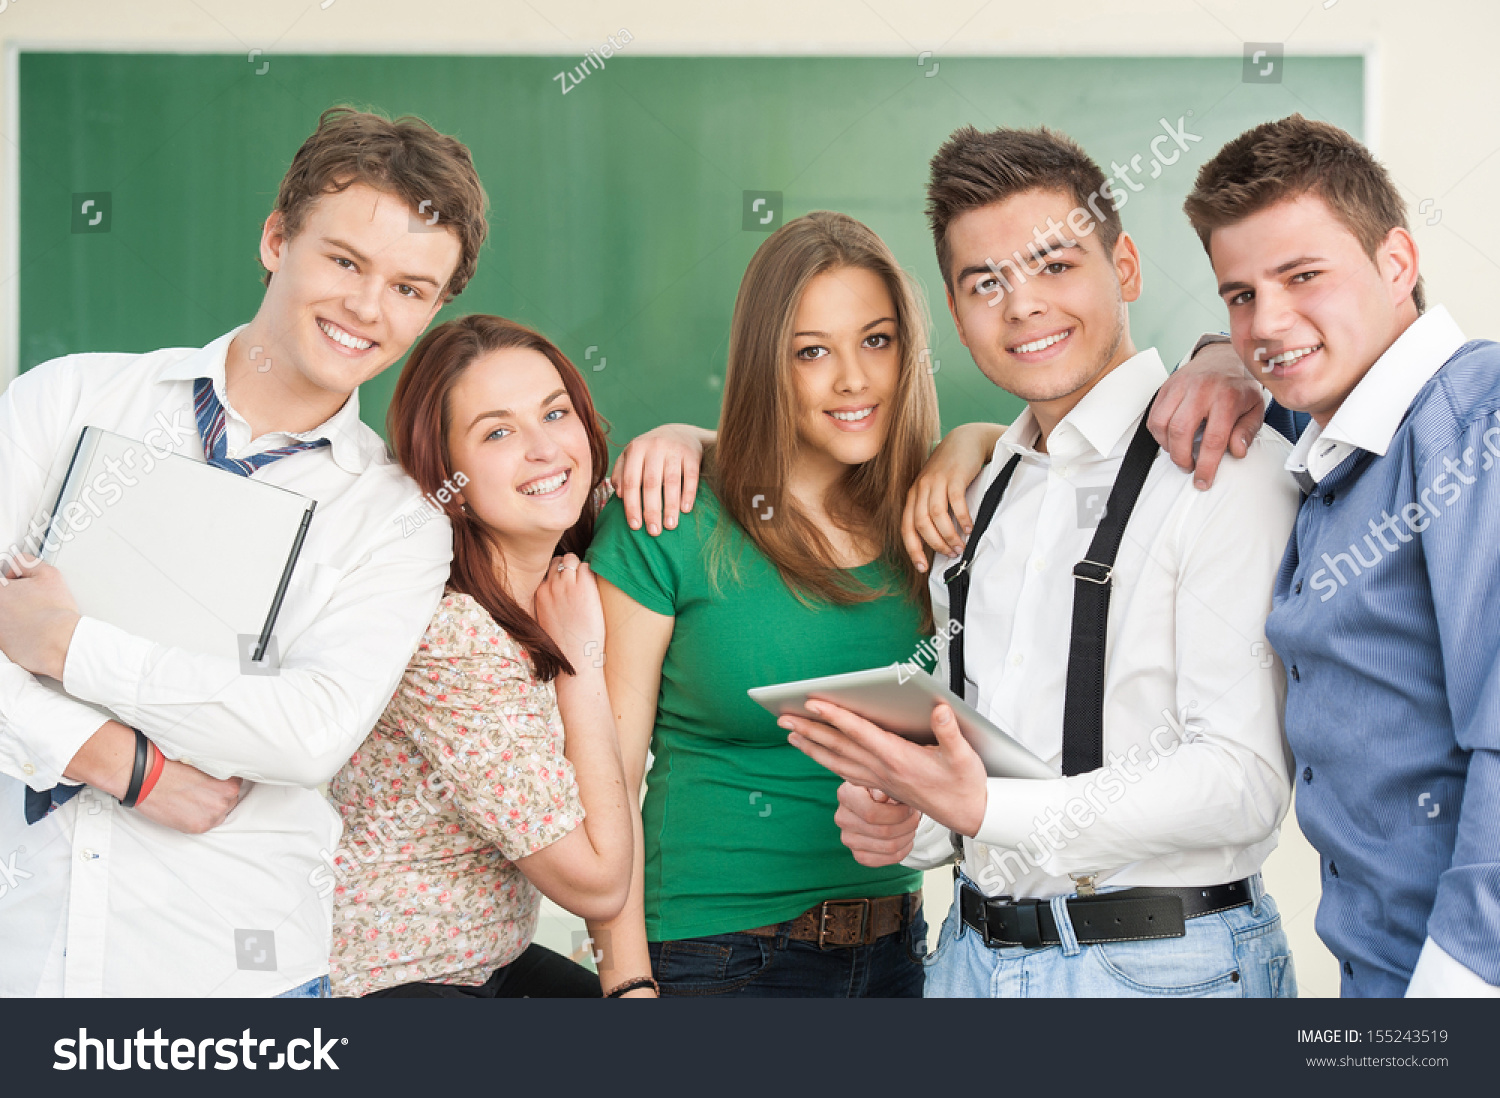 Modern Classroom Students ~ Five smiling modern students posing in a classroom stock